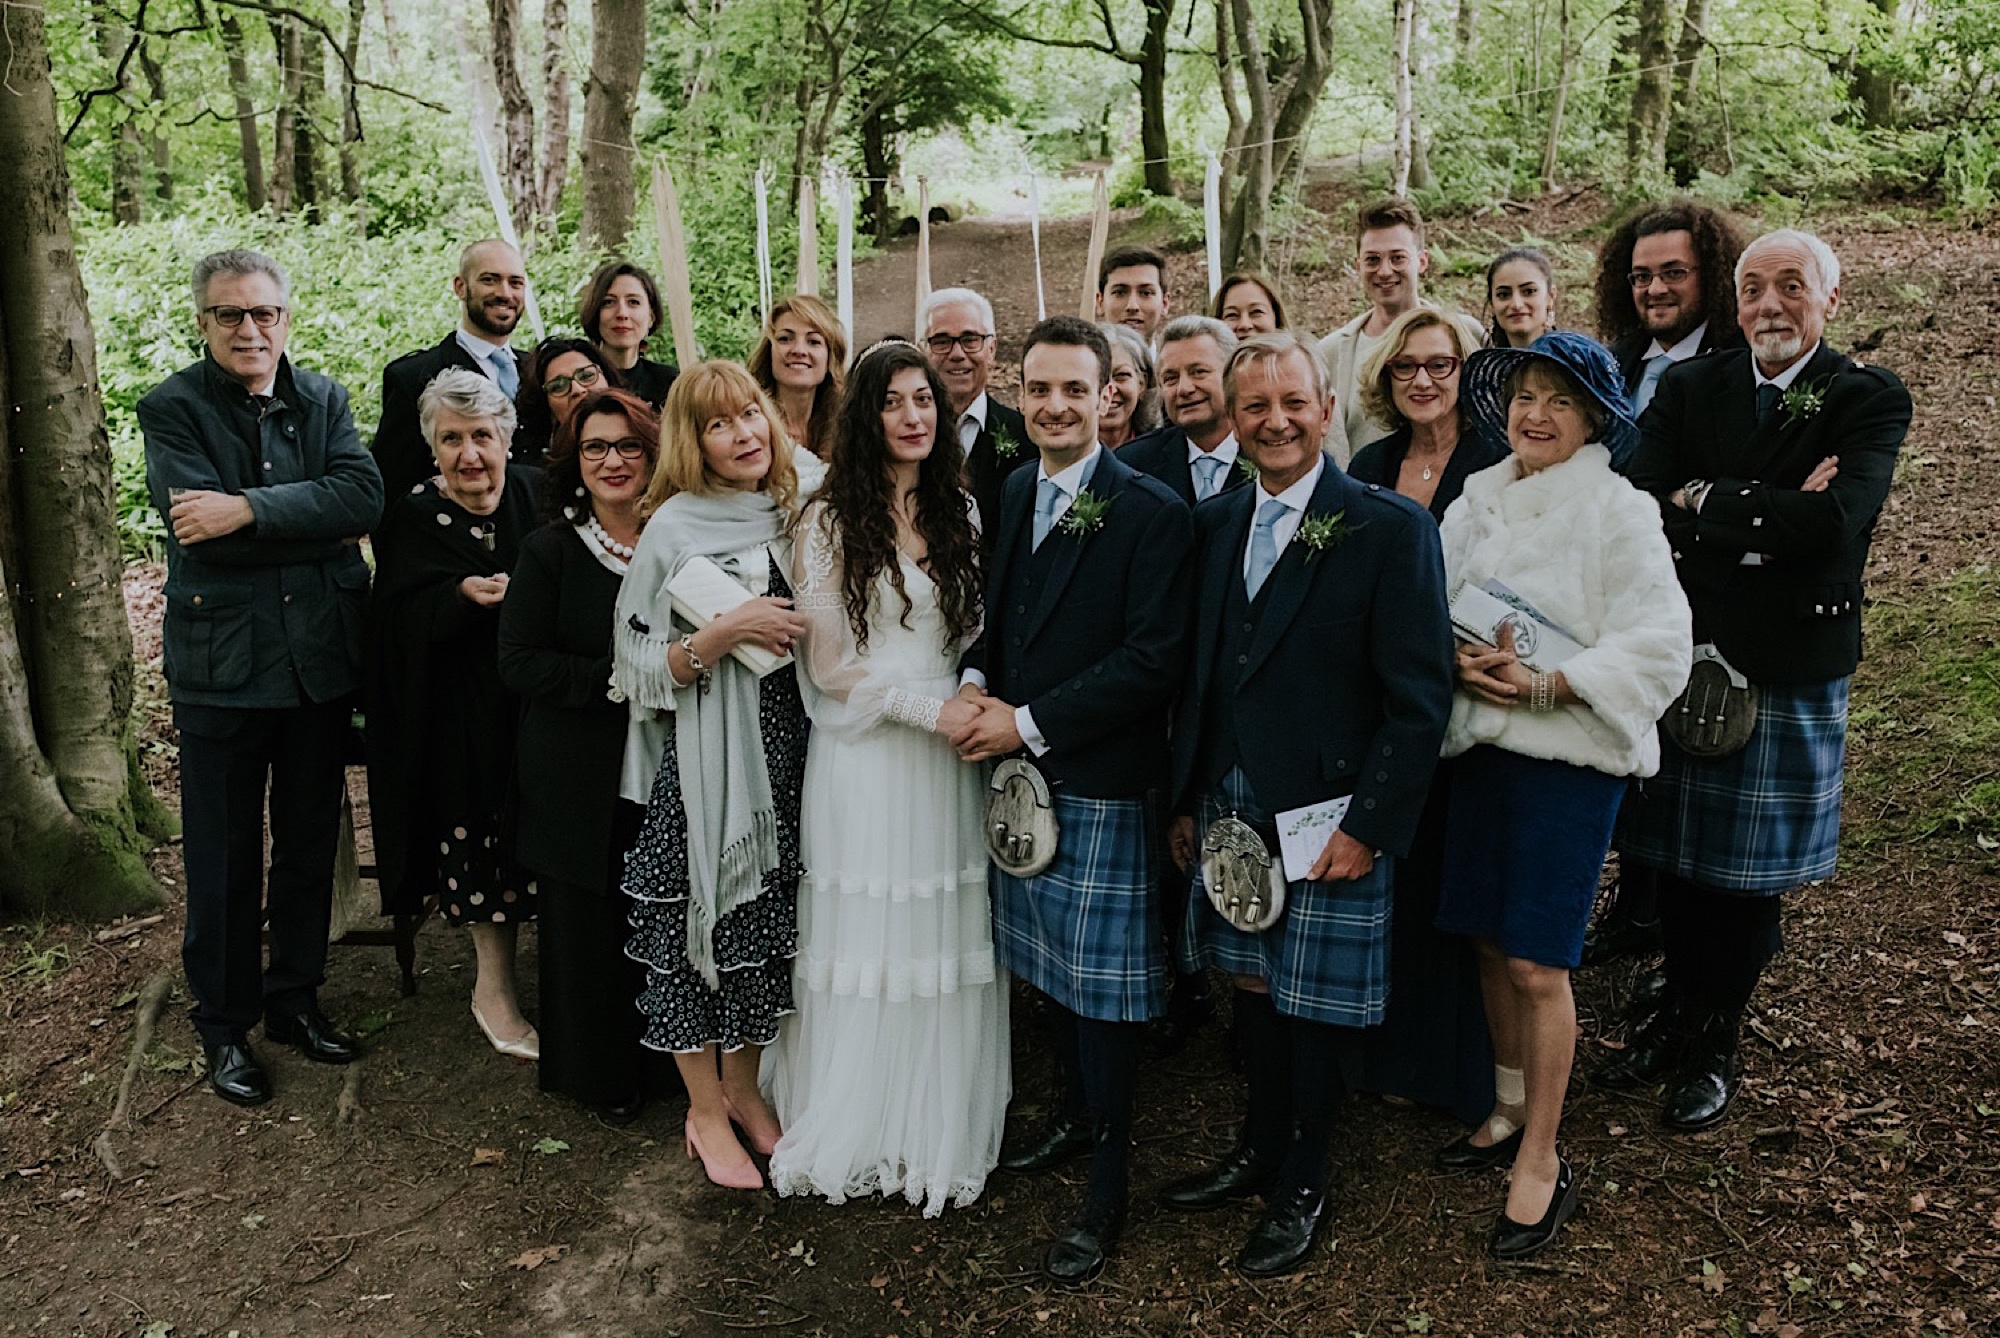 photos of all wedding guests after ceremony